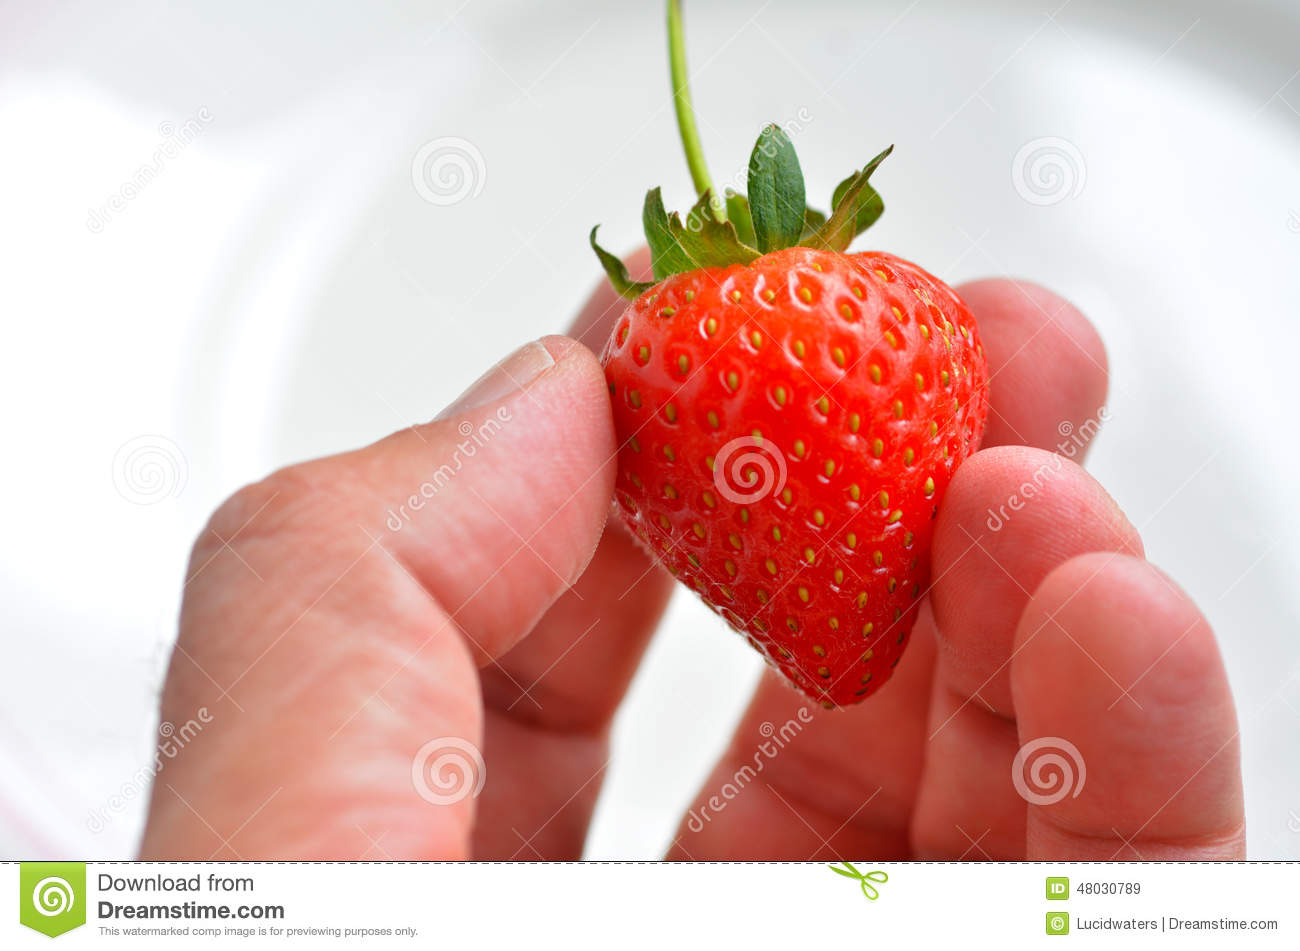 strawberry single men Strawberry nutrition strawberries are packed with vitamins and minerals such as vitamins c and k, folate, potassium, manganese, and magnesium  let's look at the most popular health benefits of strawberries in detail below  a single serving has approximately 150% of your daily requirement of vitamin c.